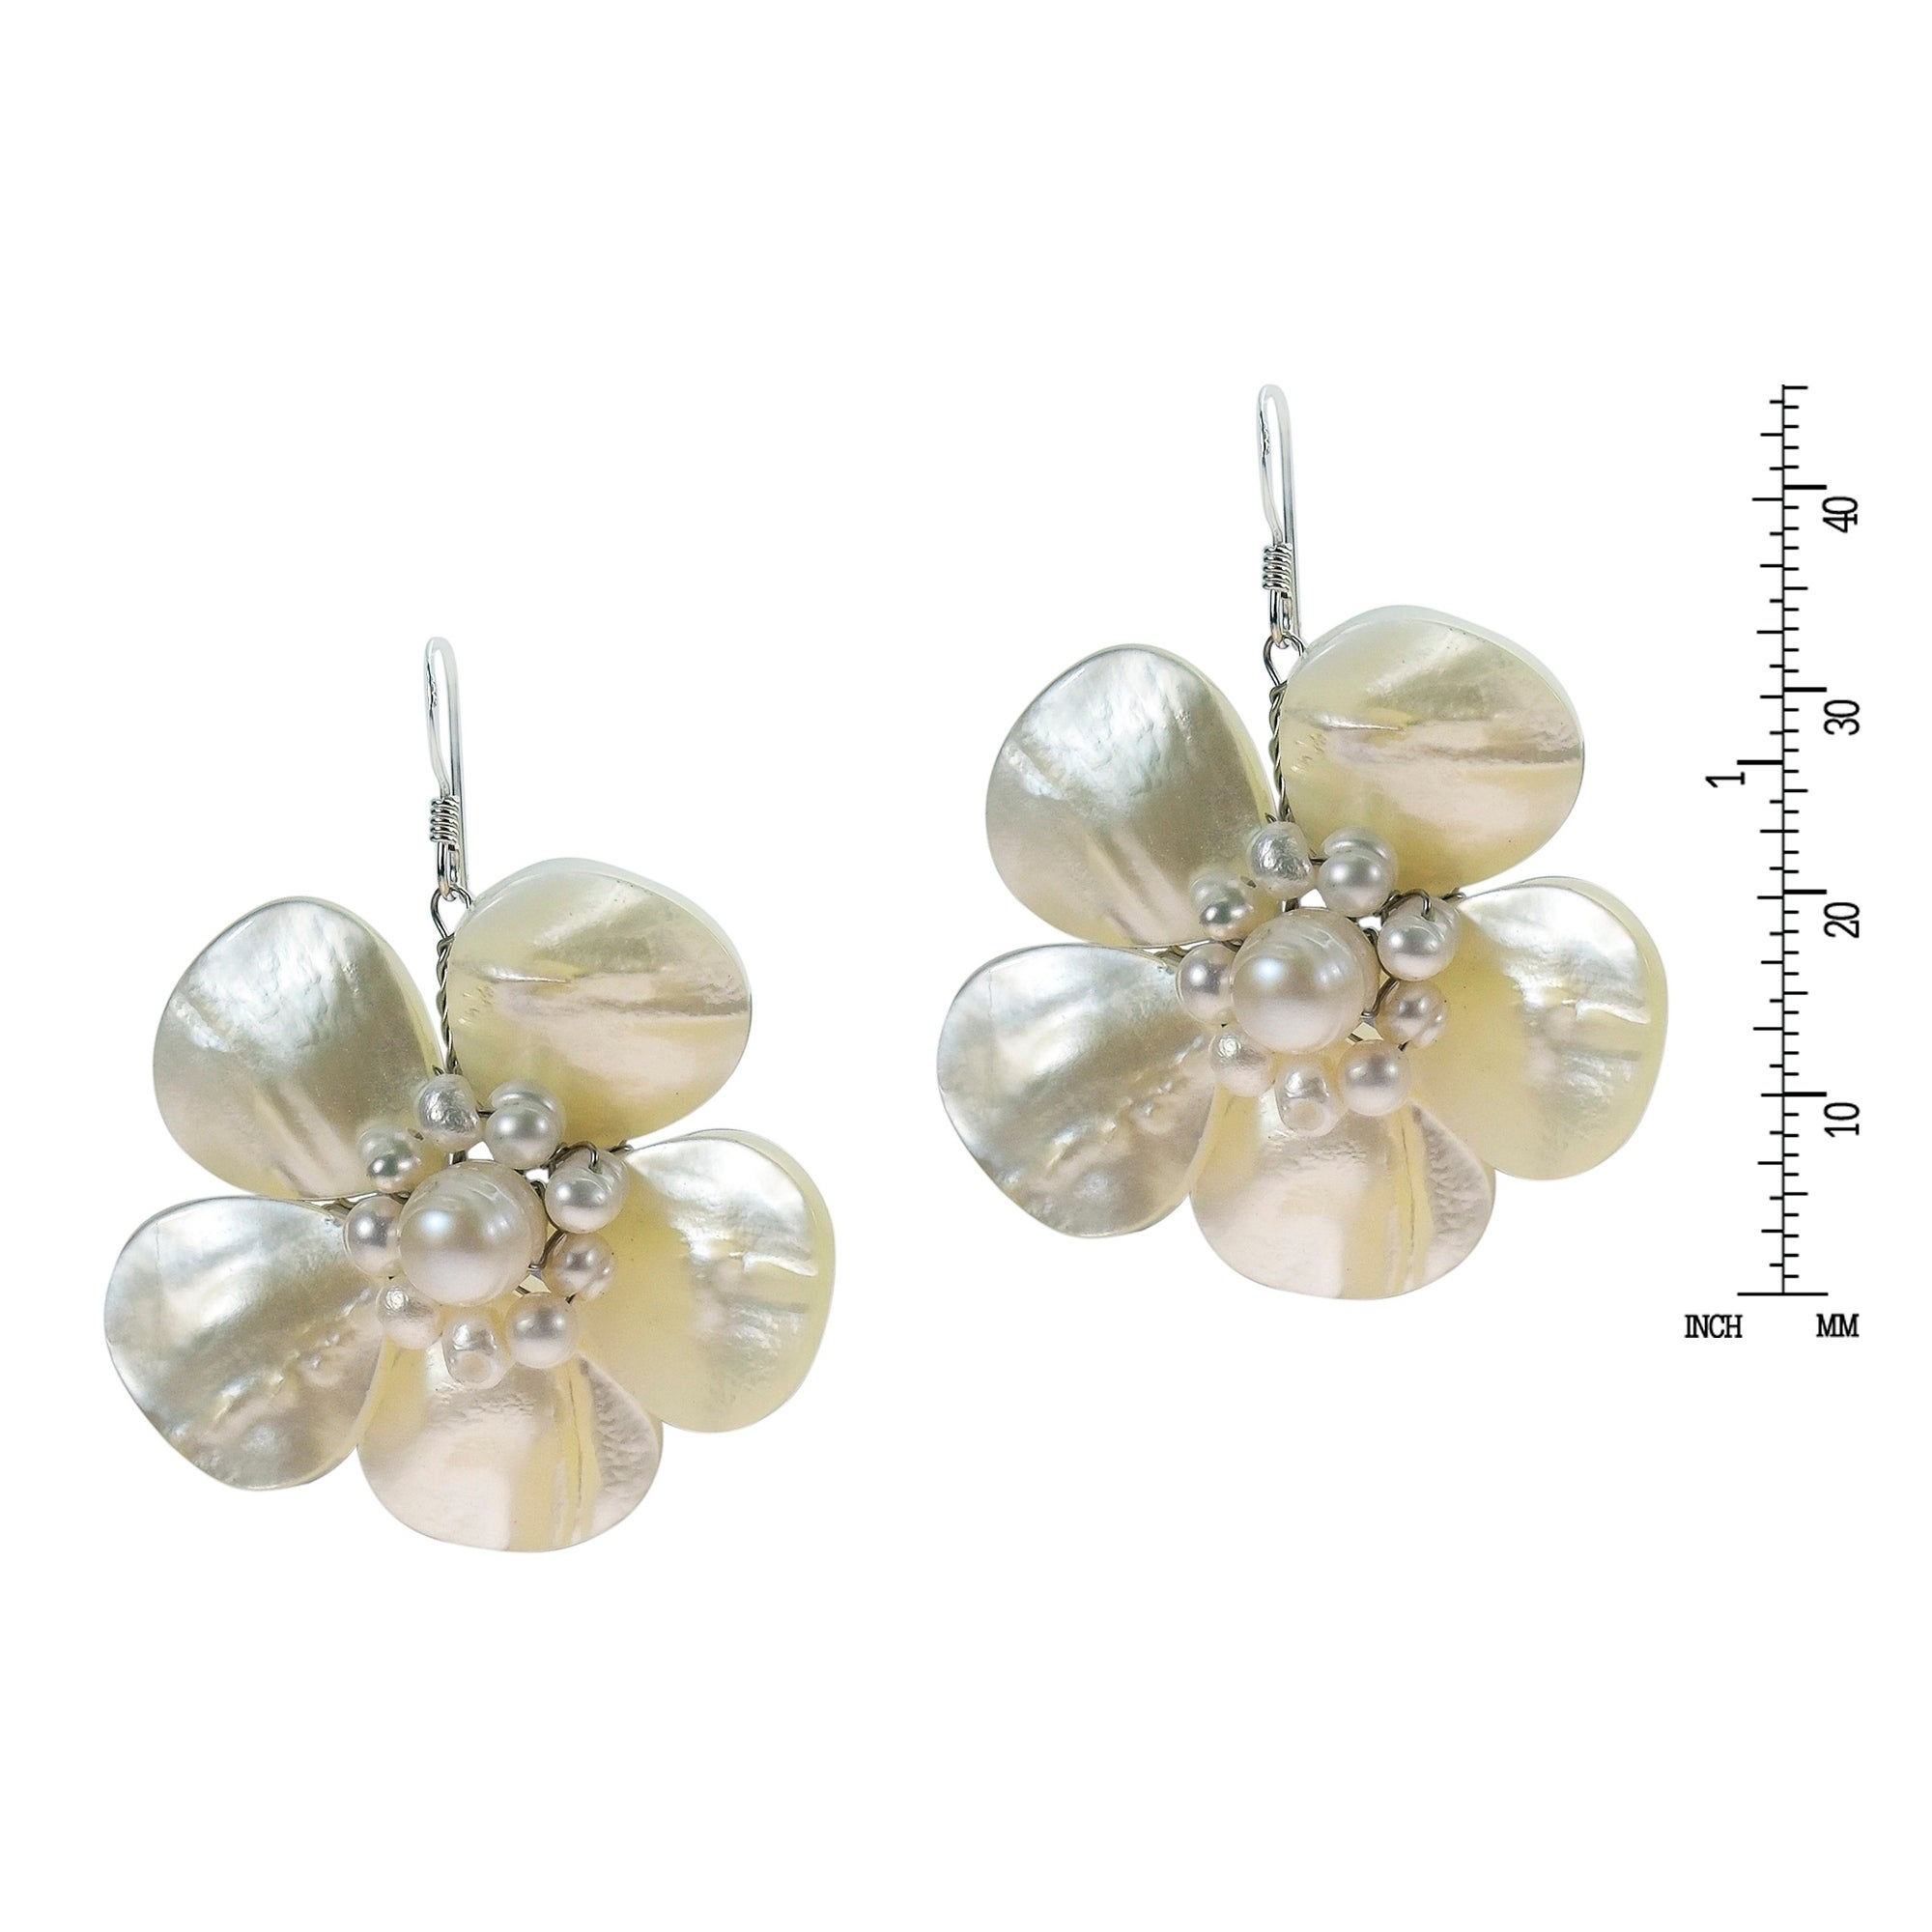 pap cultured s trio gump best freshwater sapphire akoya pearls sort earrings is jewelry pearl peral